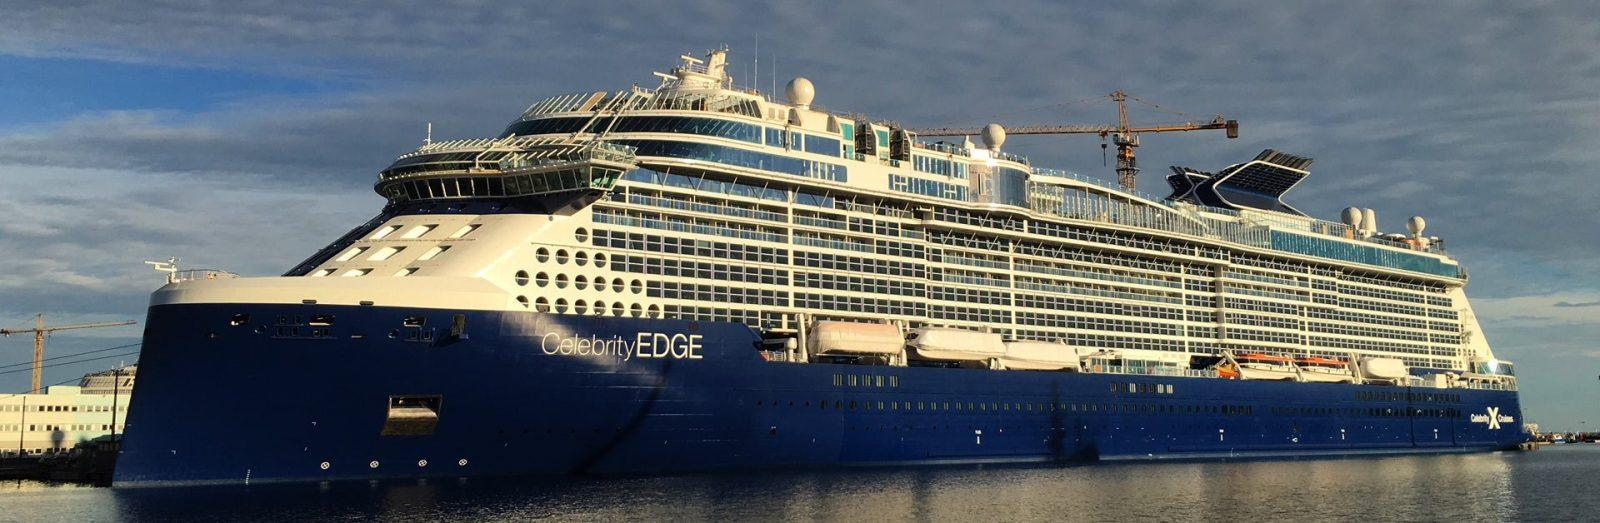 cruise deals on Celebrity EDGE cruise ship